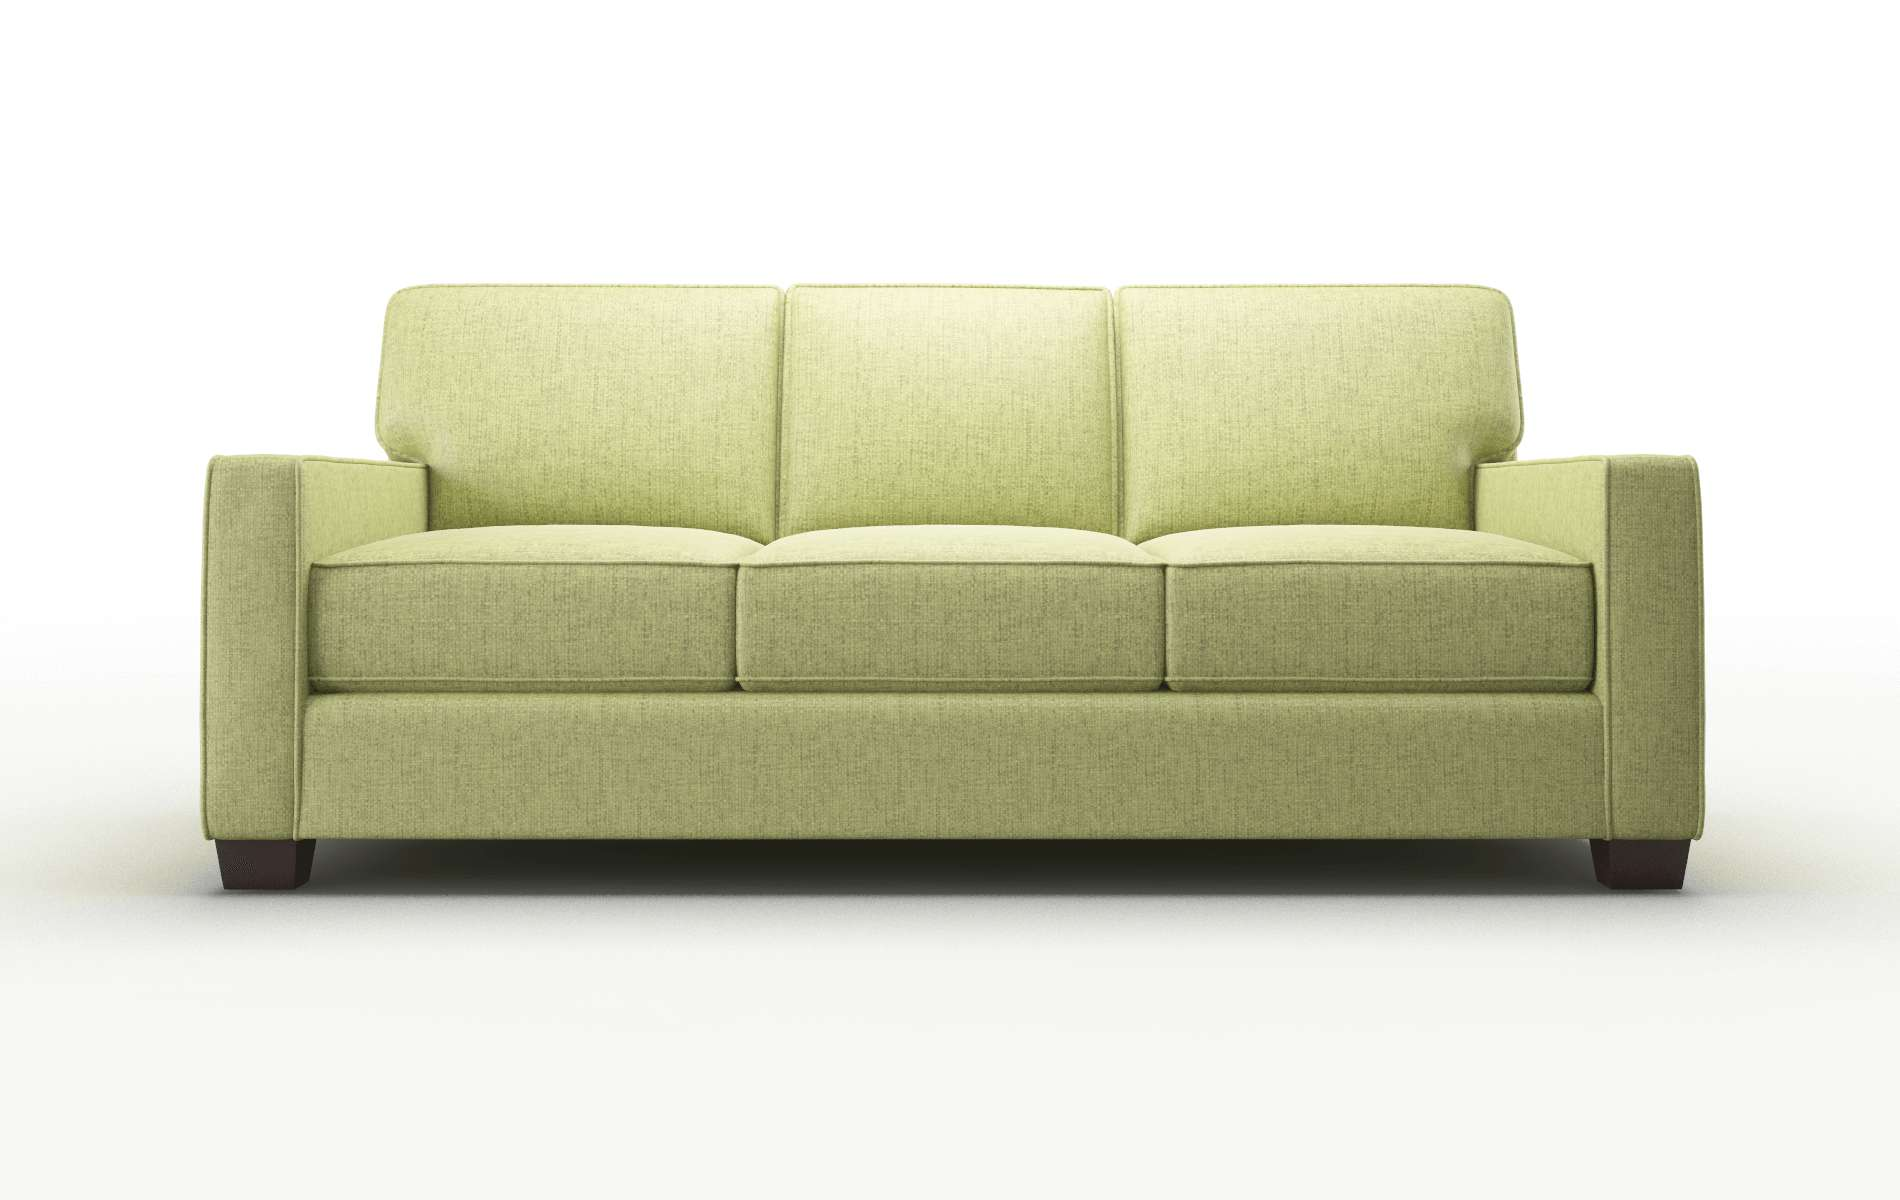 Chicago Notion Appletini Sofa espresso legs 1